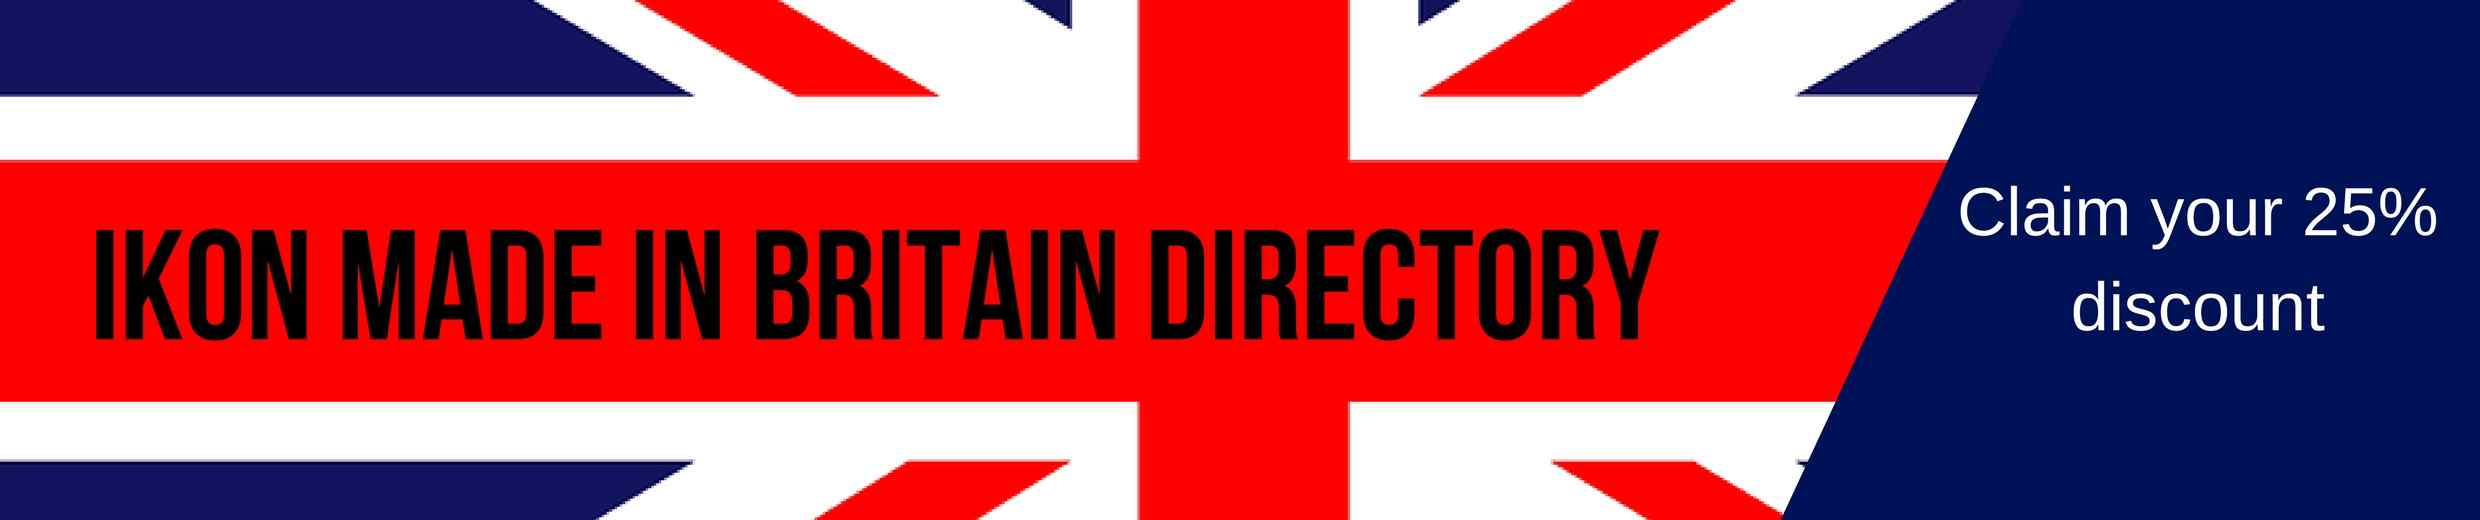 Ikon London Made in Britain Business Directory